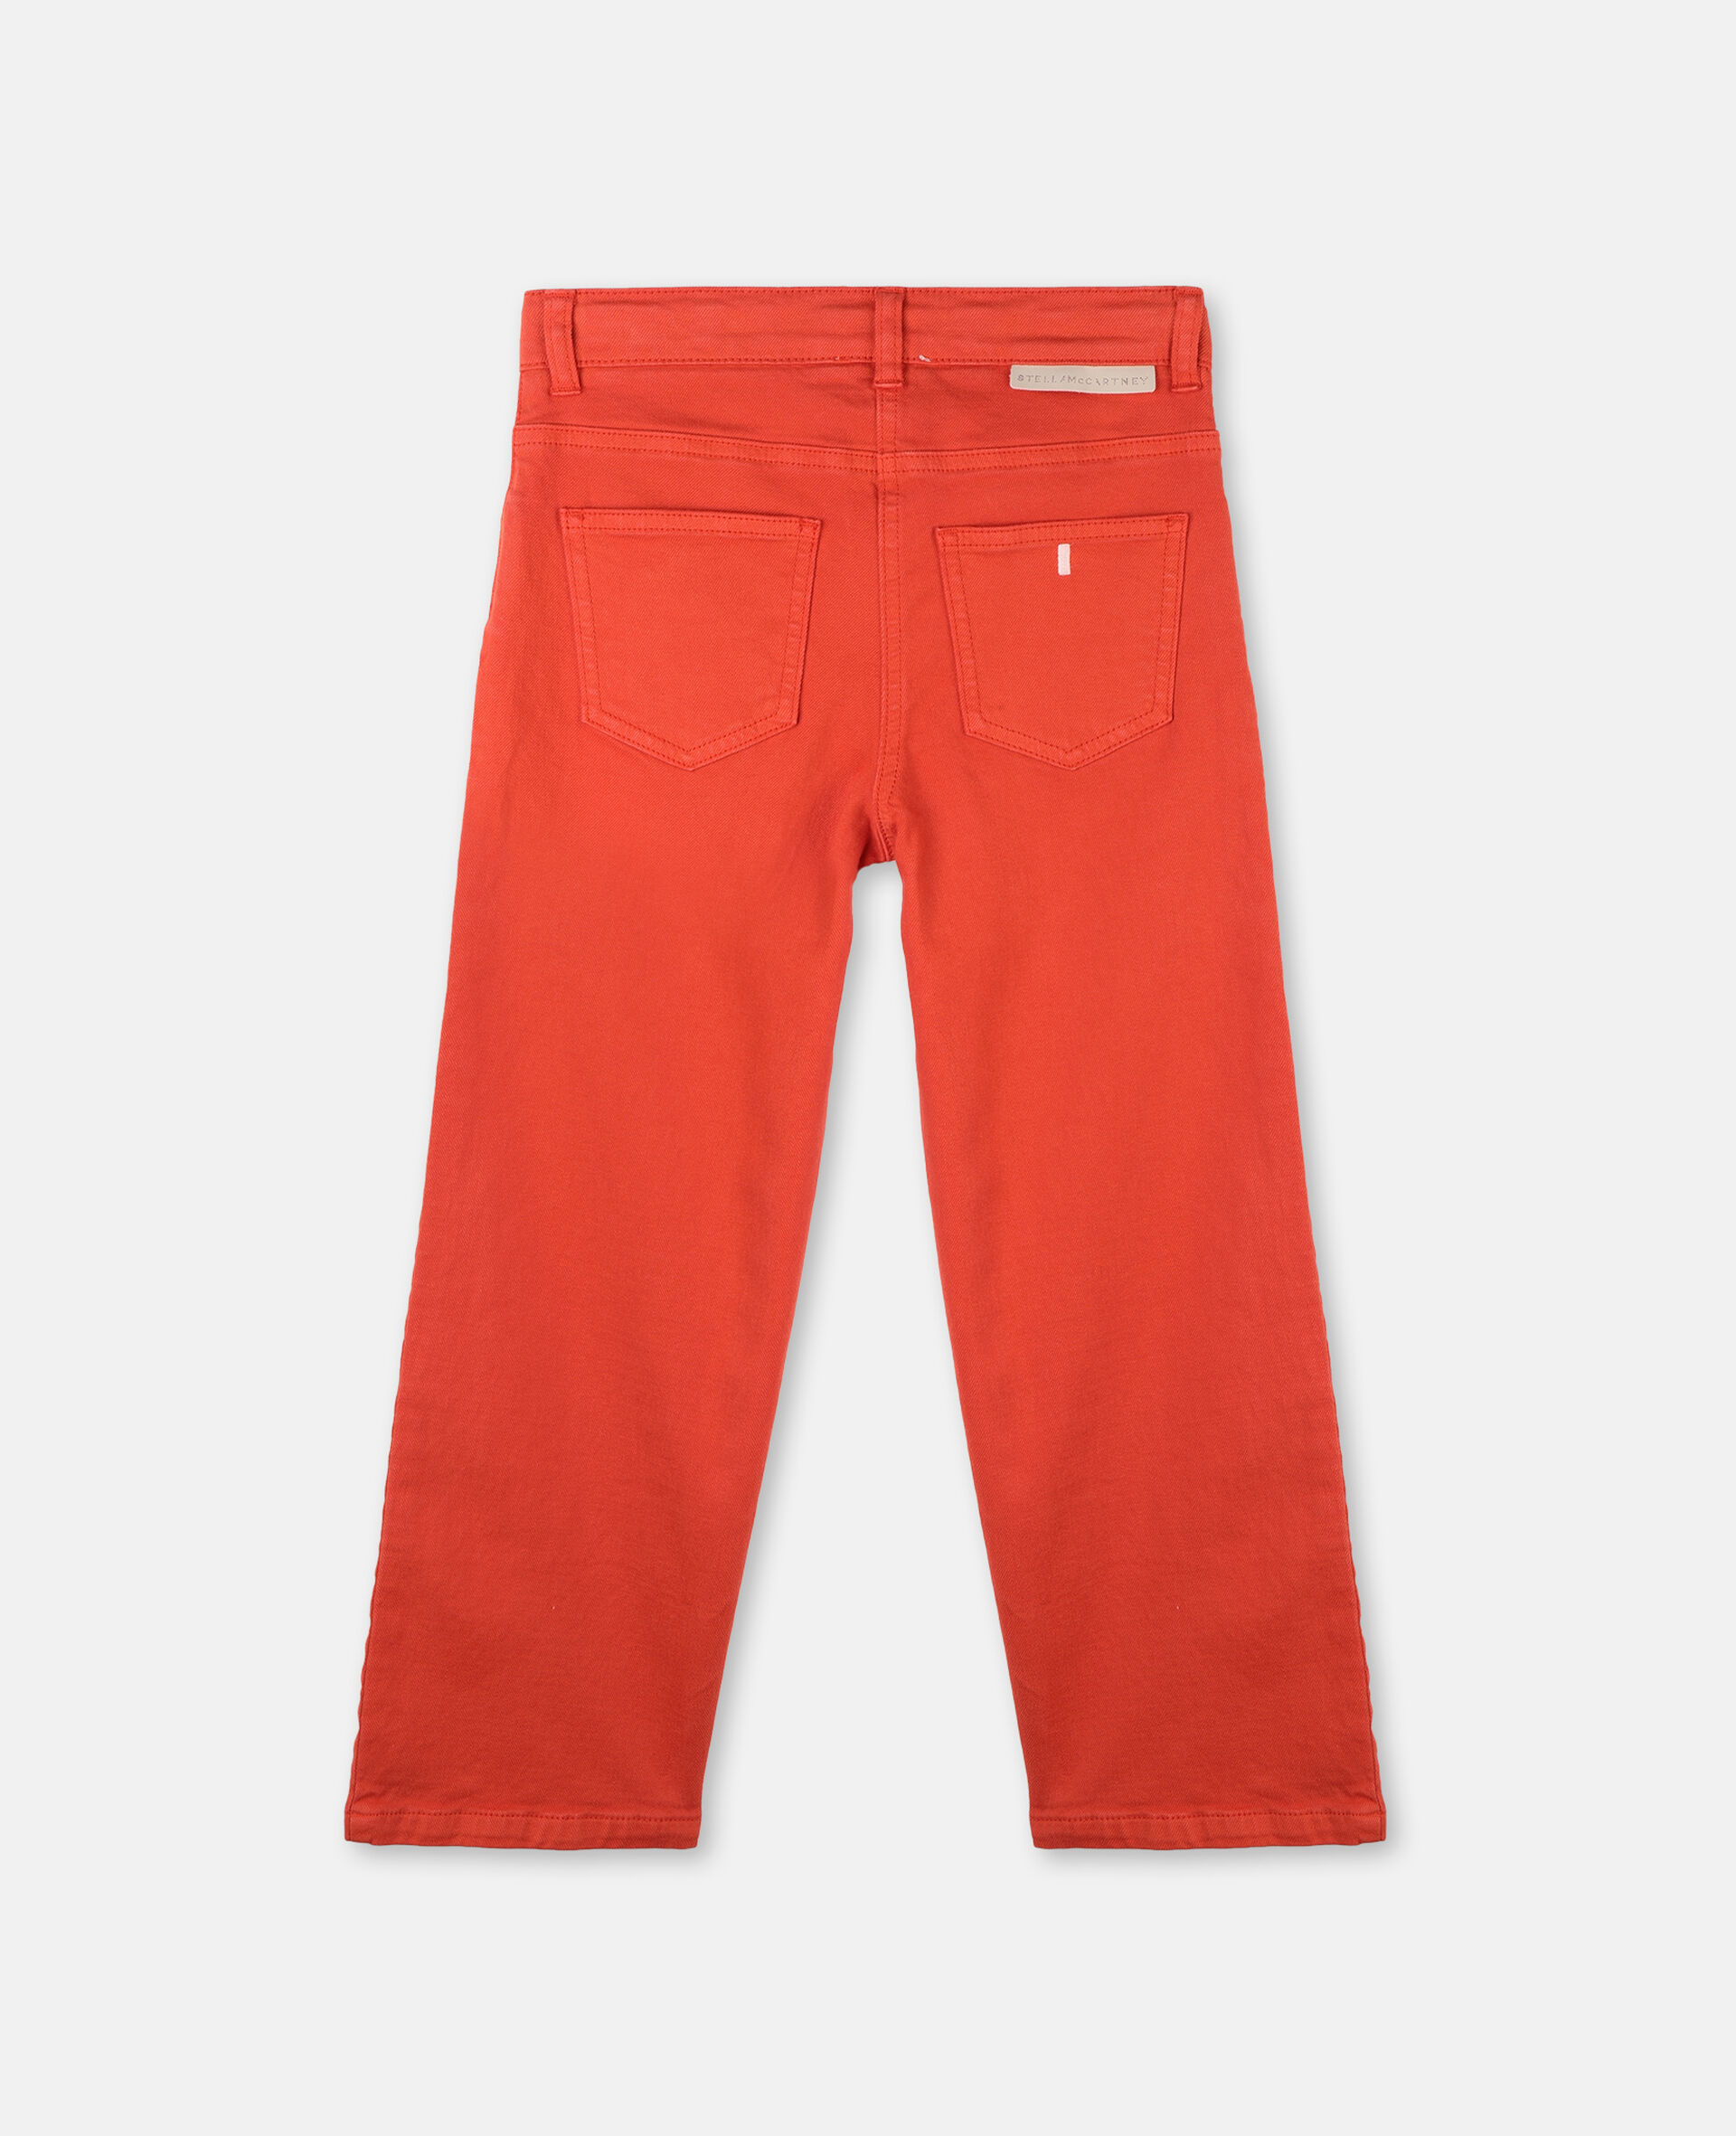 Cotton Denim Trousers-Red-large image number 3